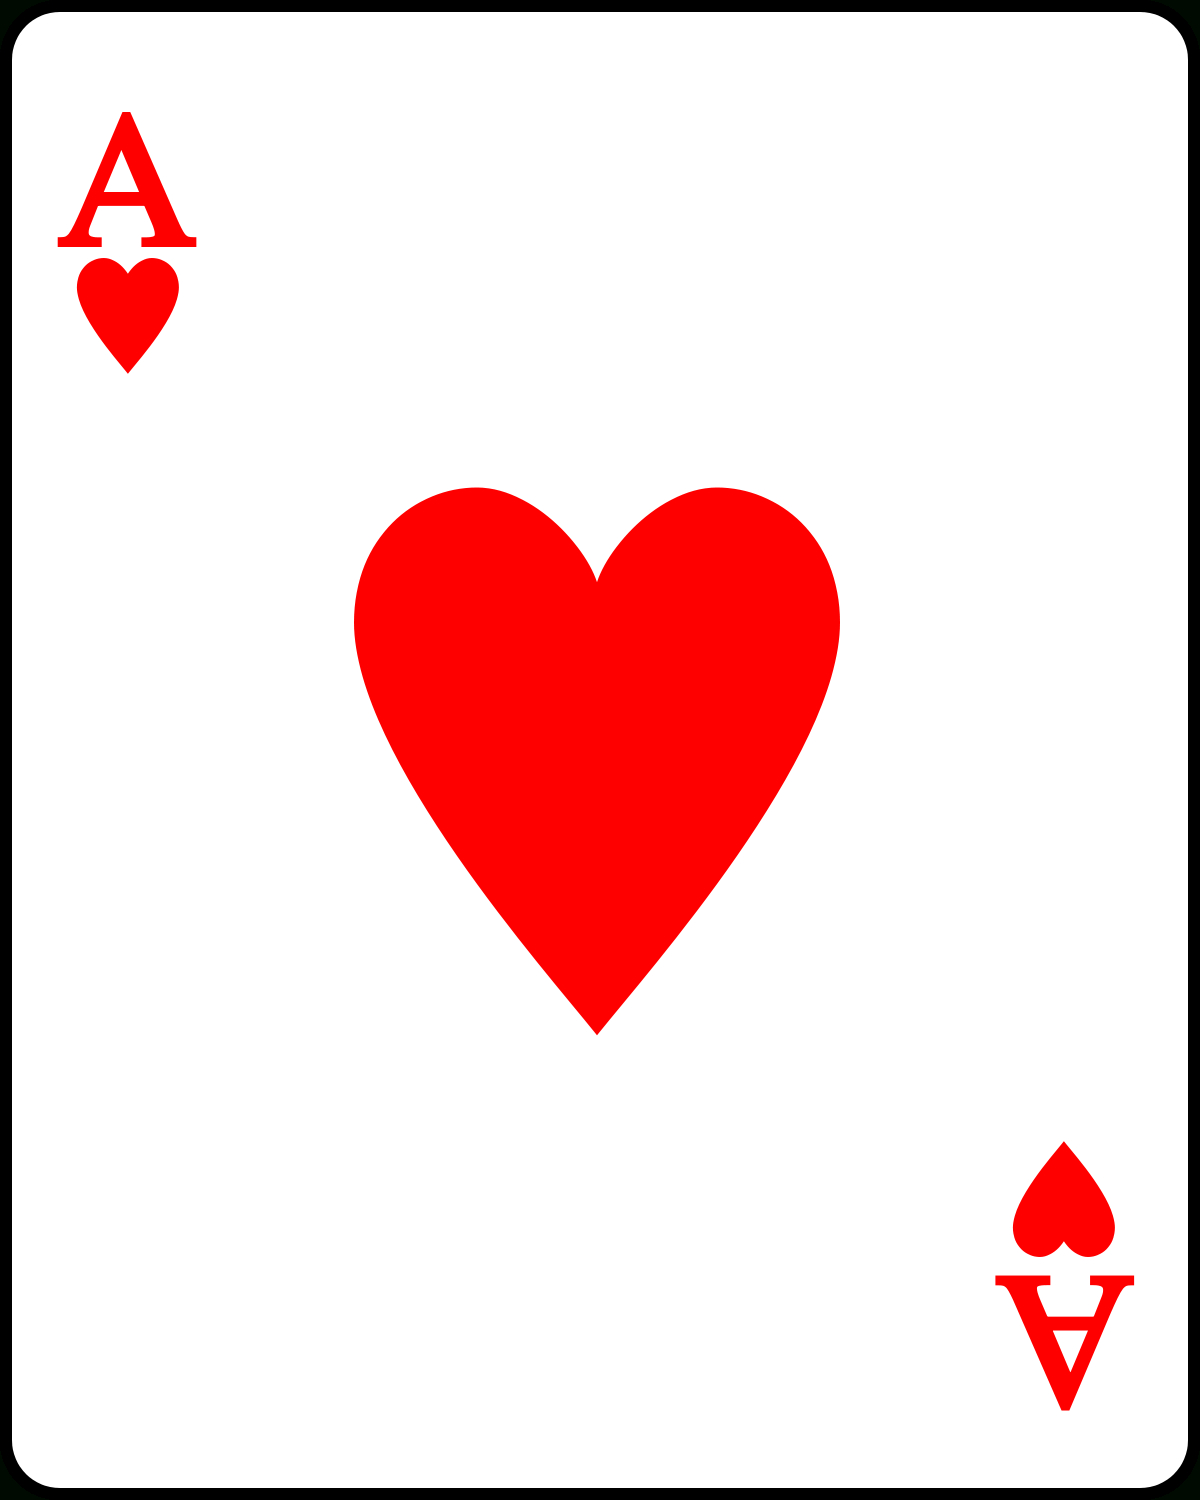 hearts (suit) - wikipedia